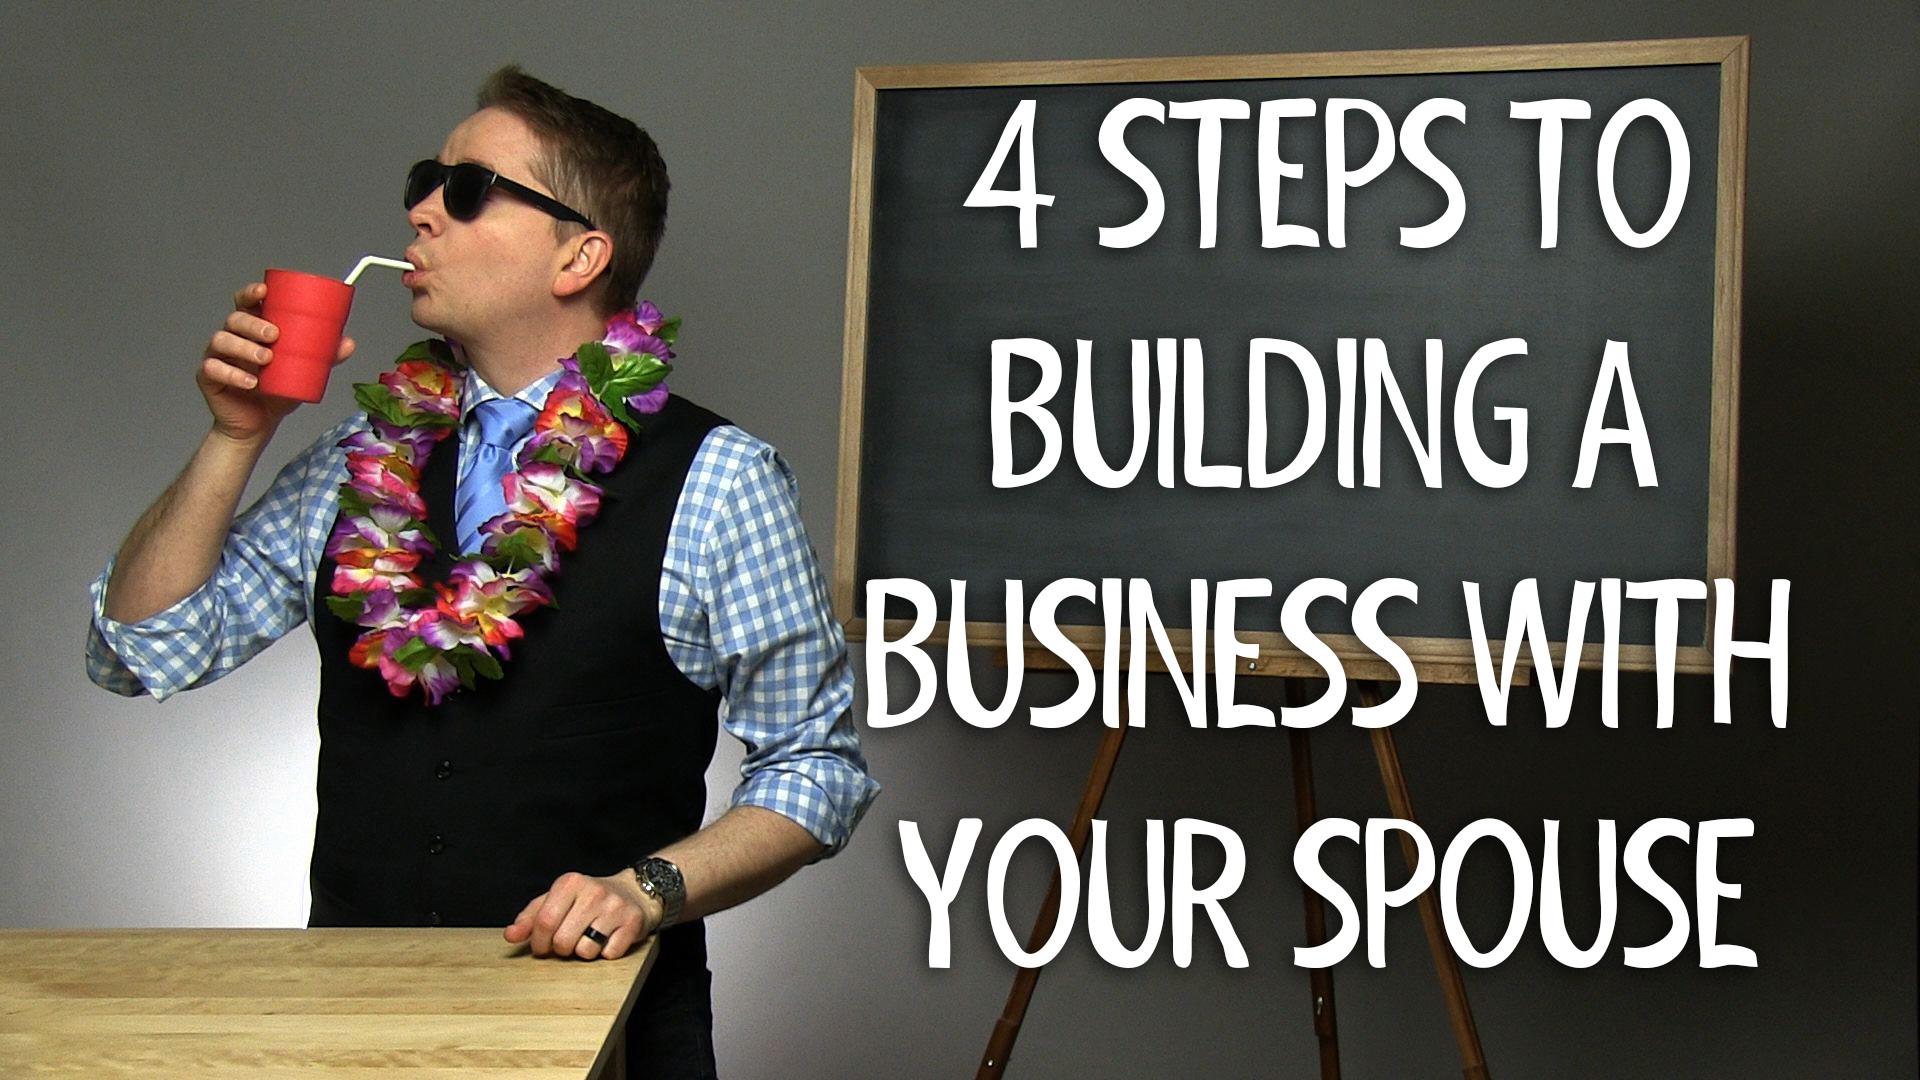 4 Steps to Building a Small Business with Your Spouse